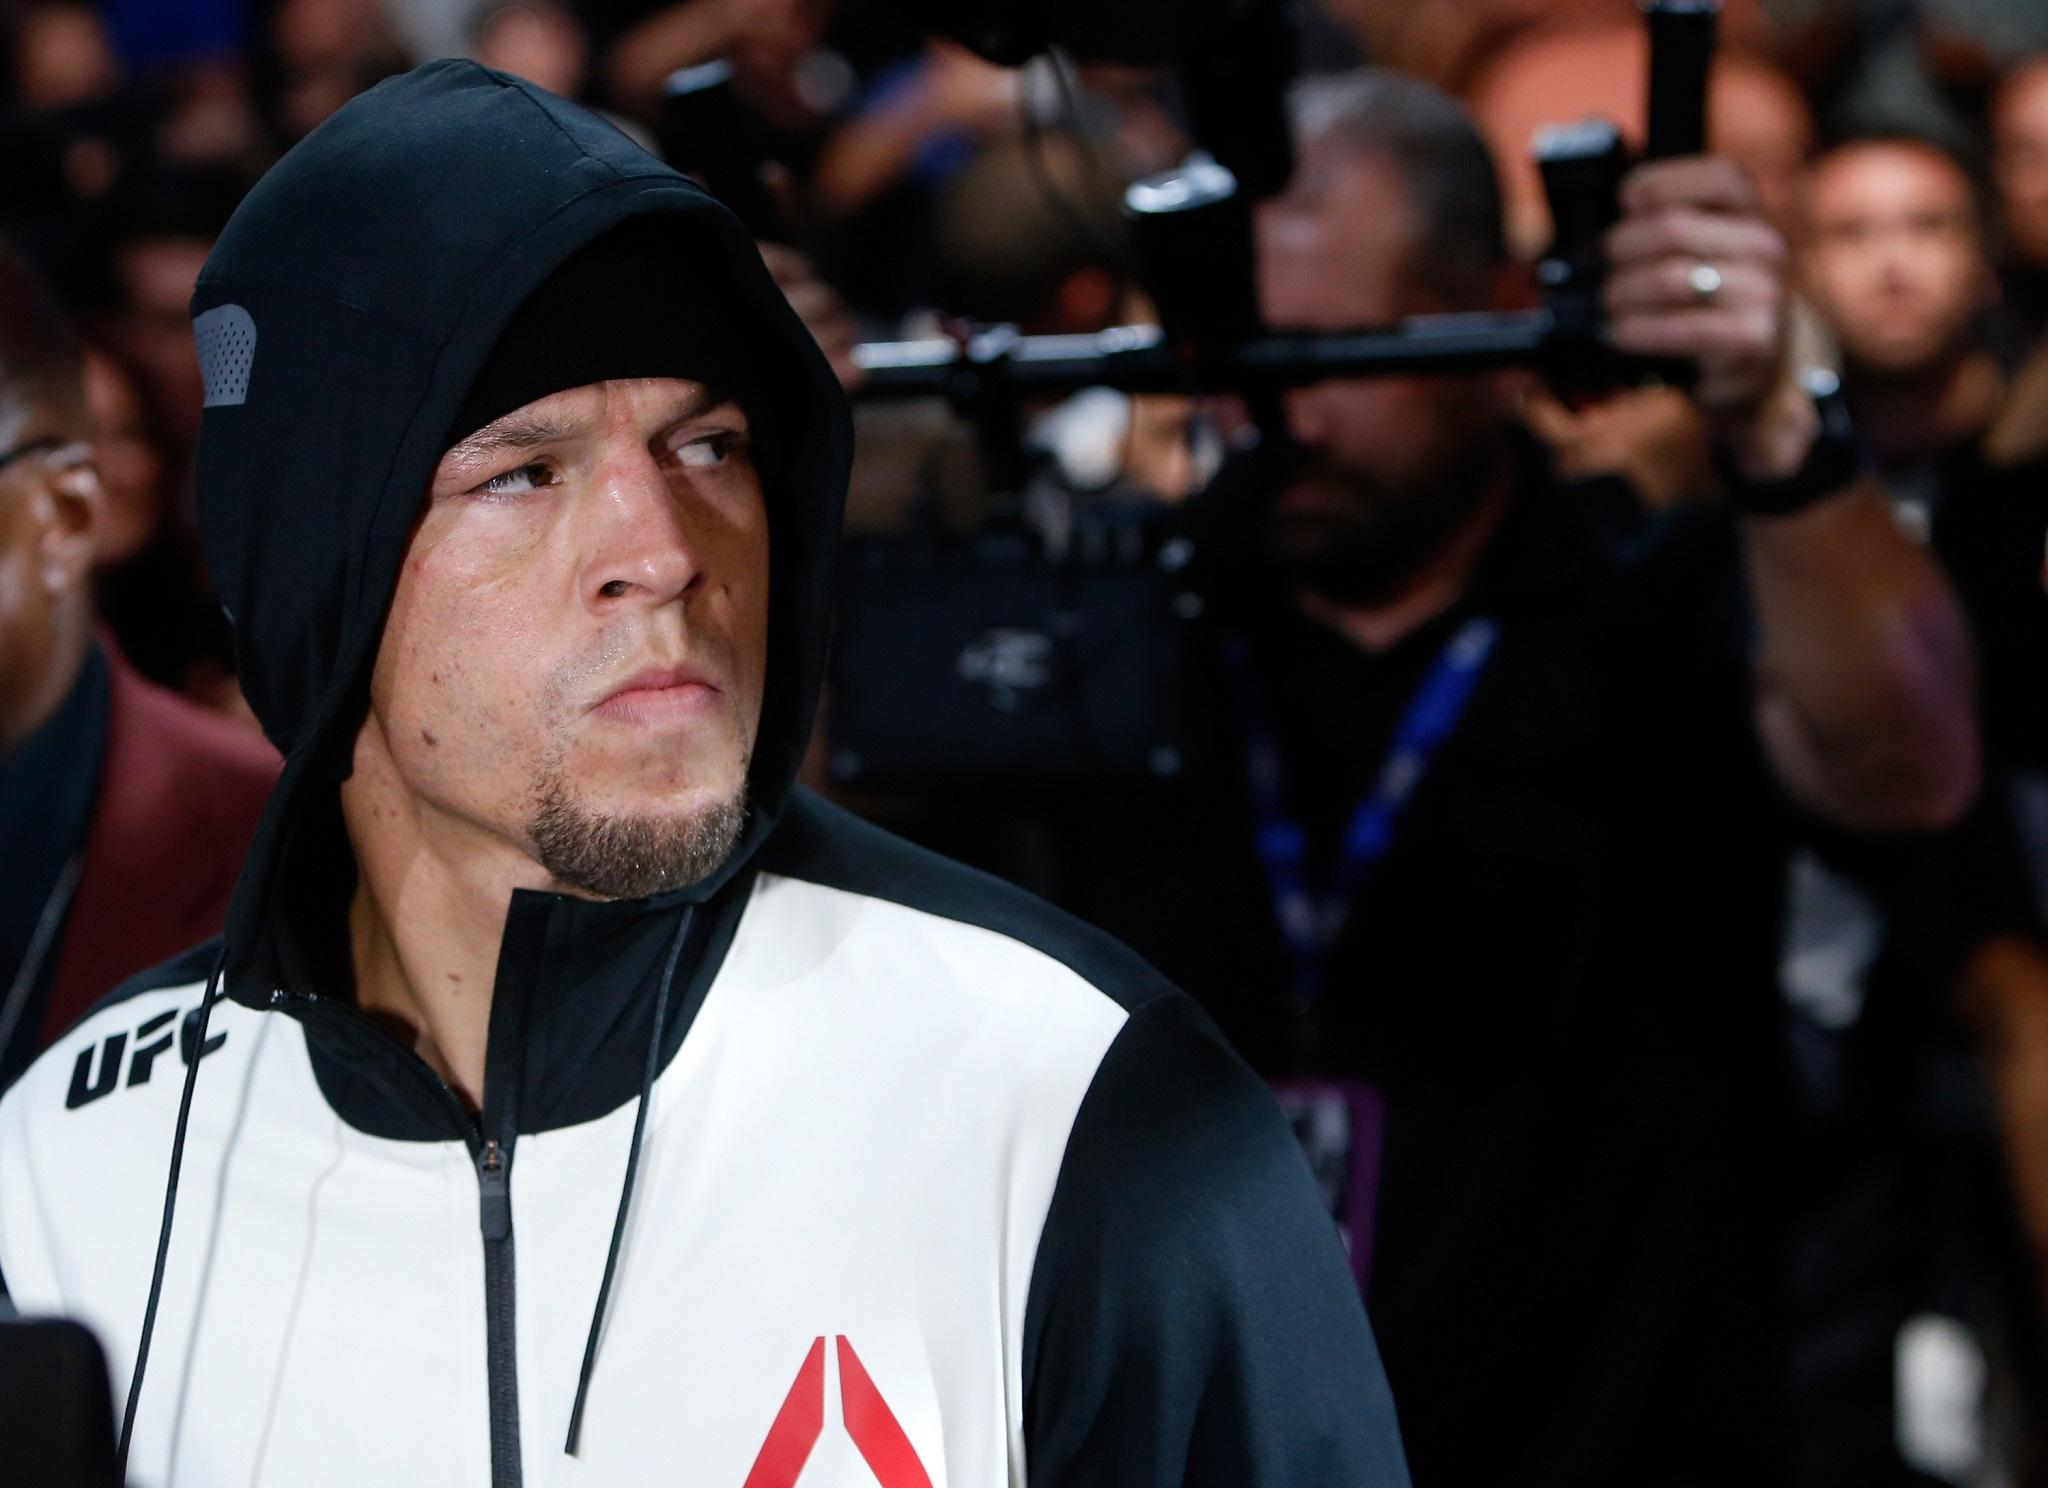 UFC: Nate Diaz could still face drugs ban despite being